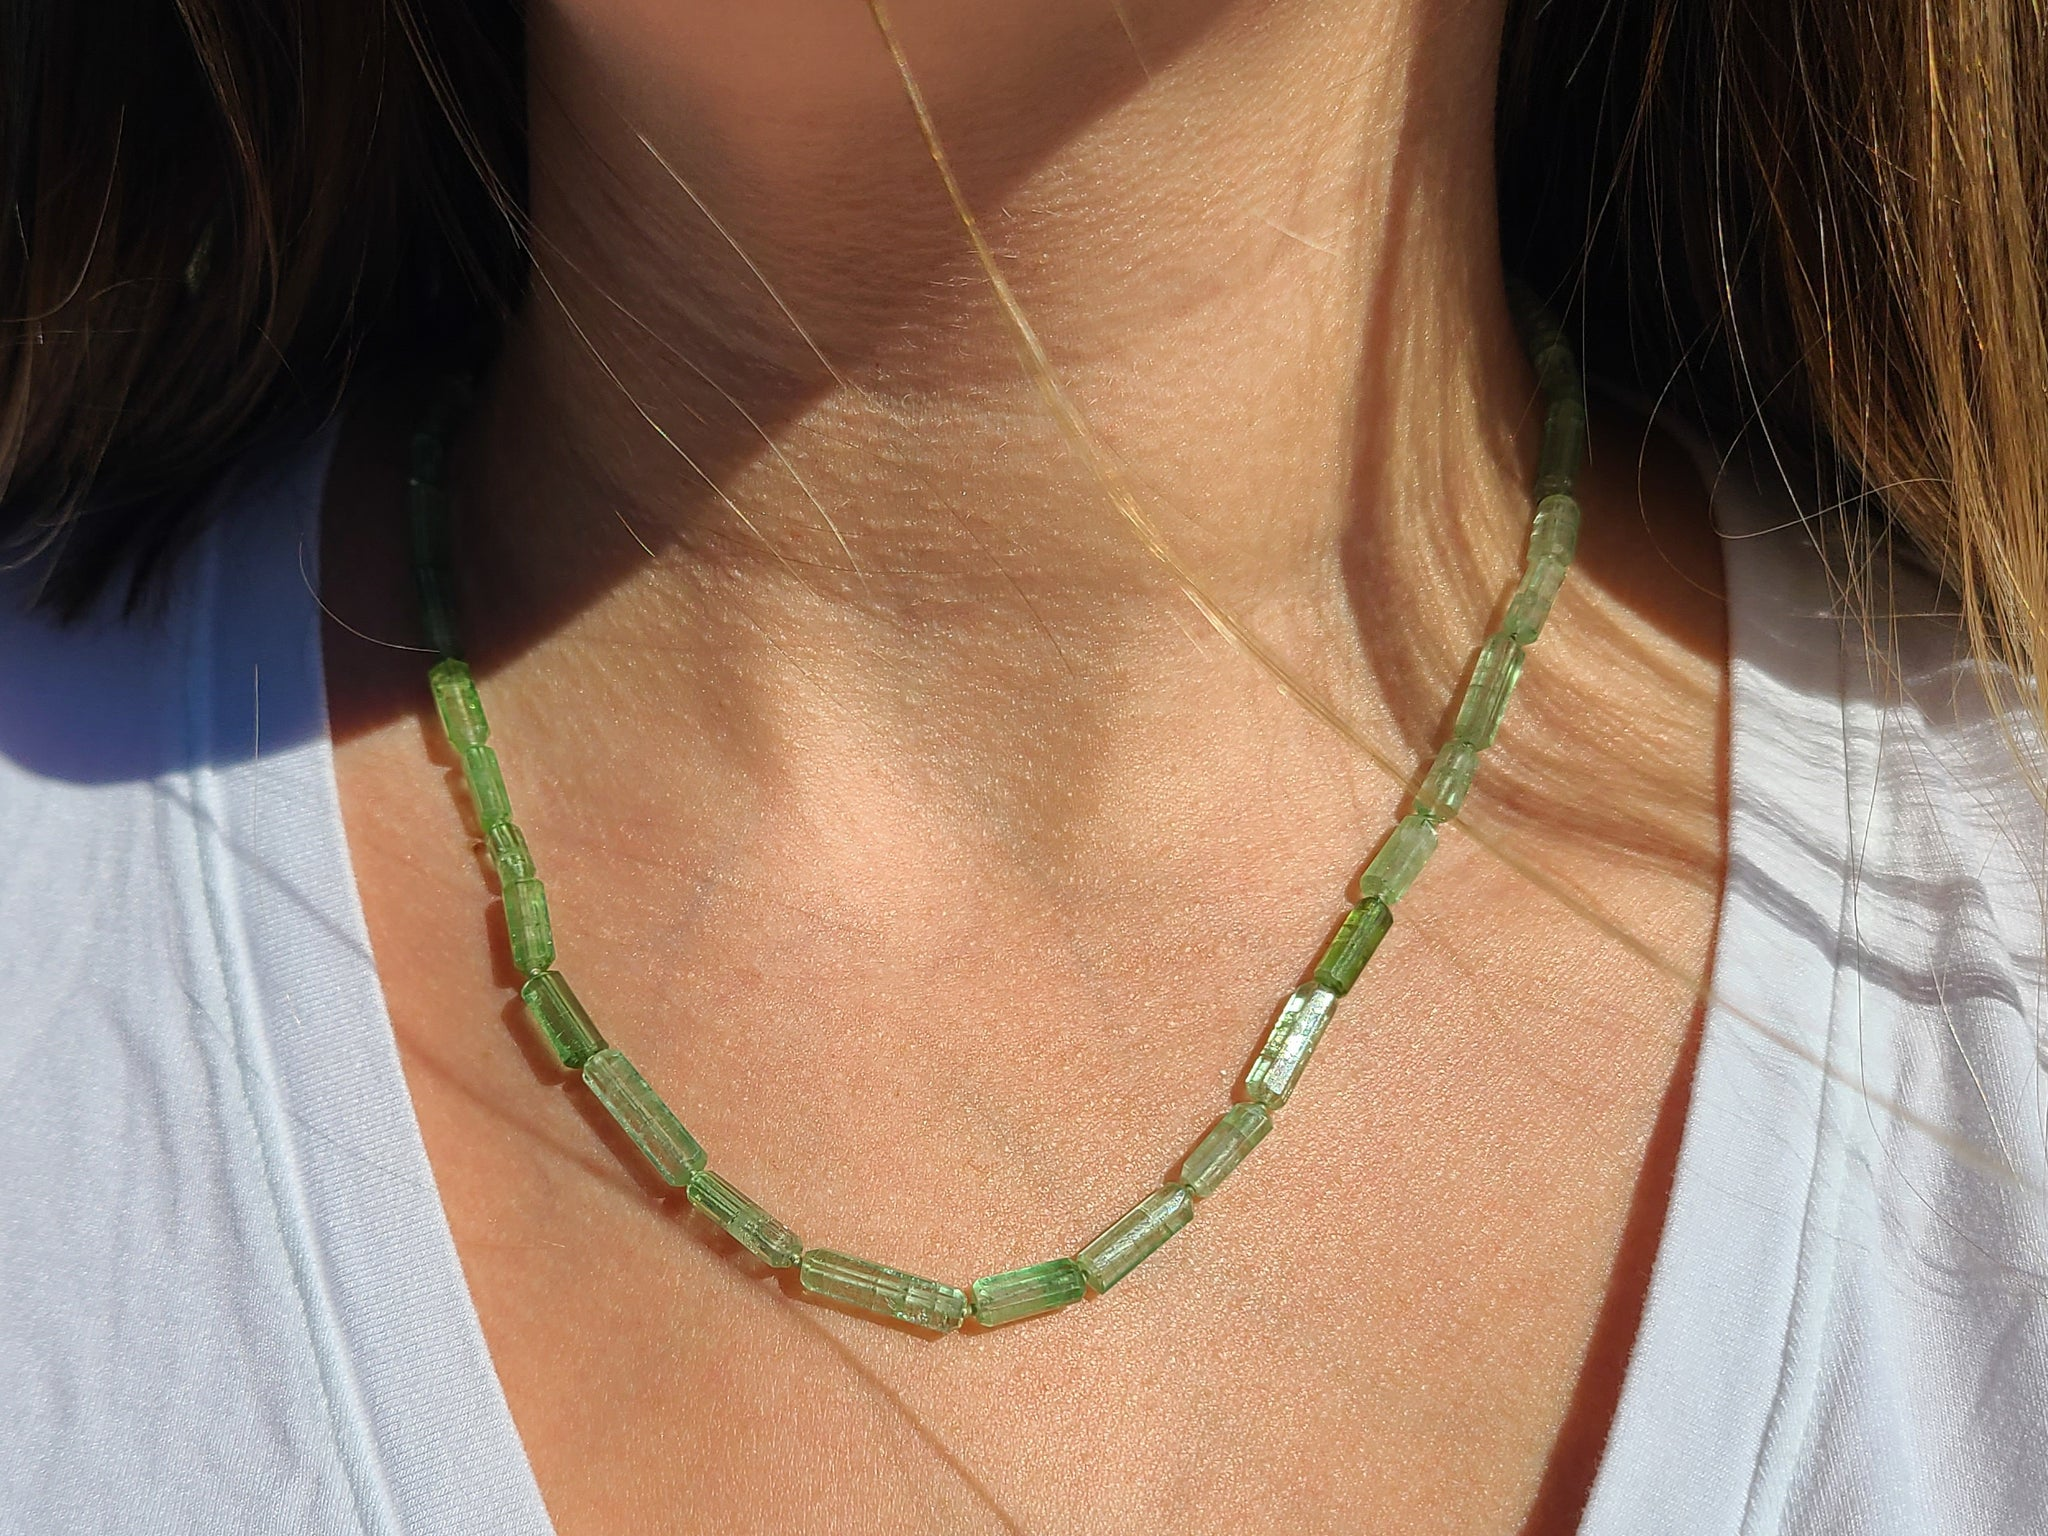 Green Opal Gemstone Candy Necklace    Knotted Gemstone Necklace   Beaded Necklace